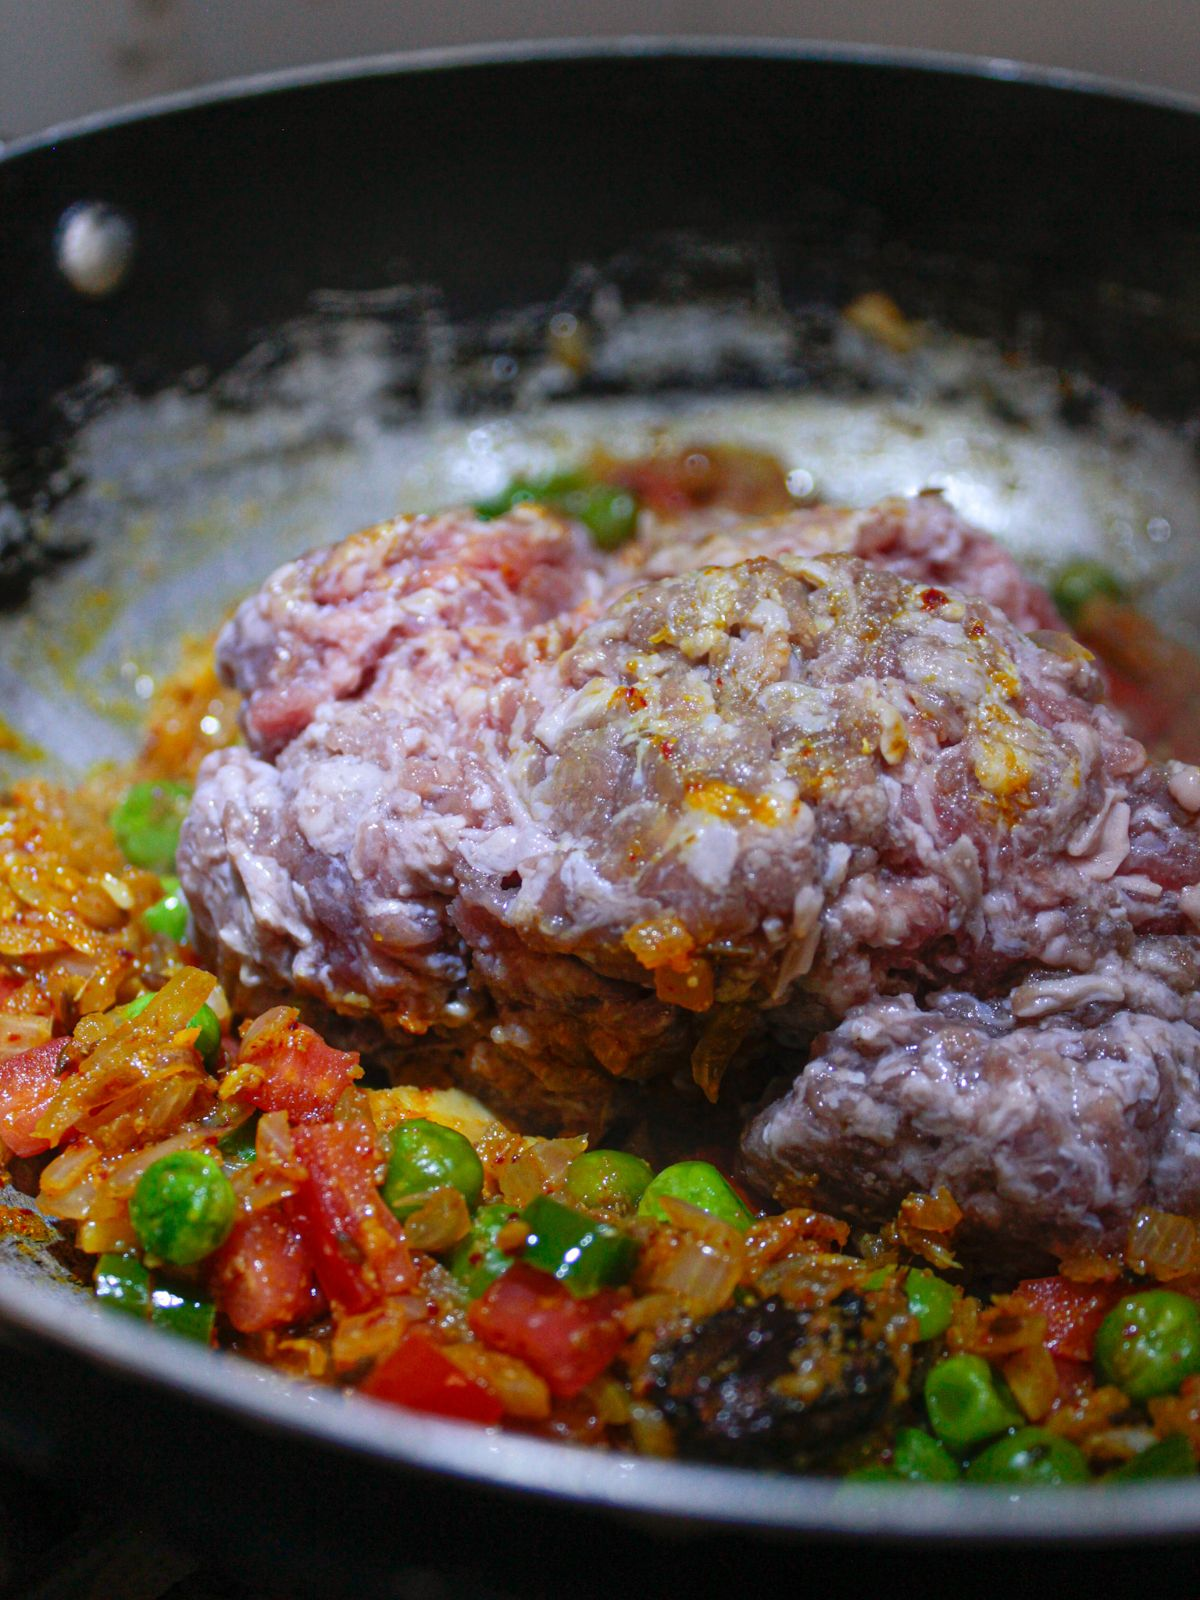 Raw ground mutton on top of peas and tomatoes in skillet